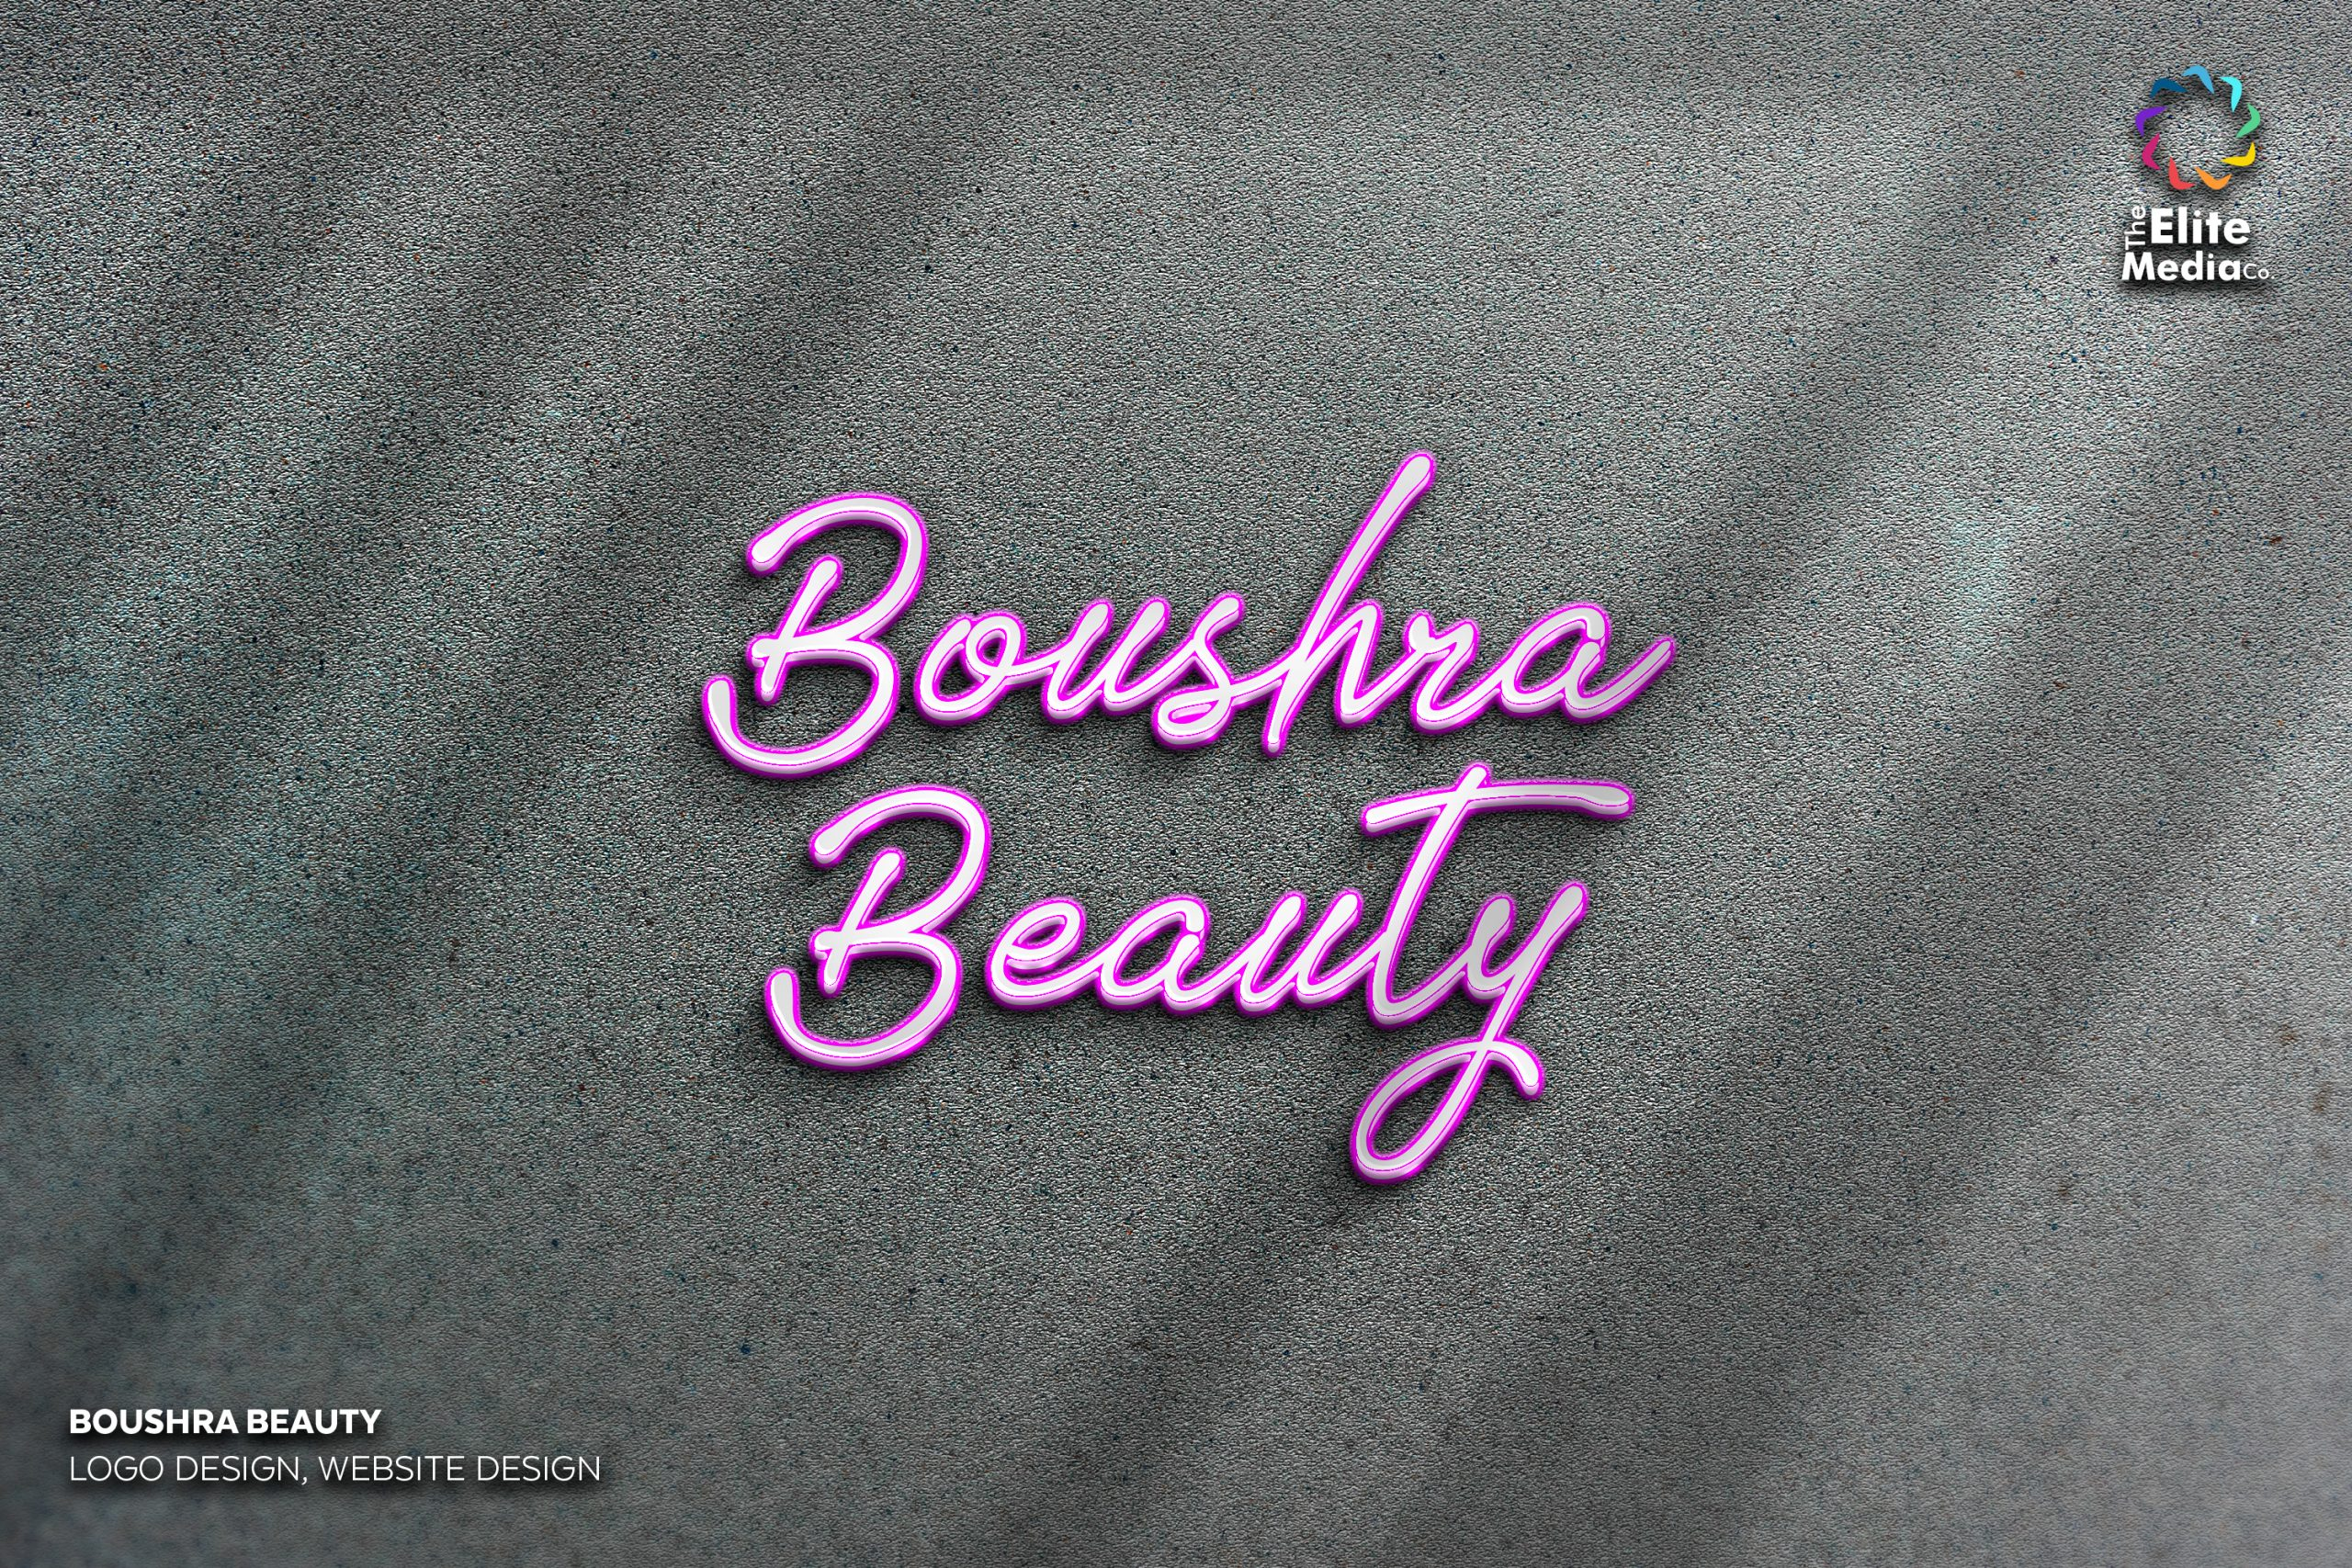 Boushra Beauty – Logo